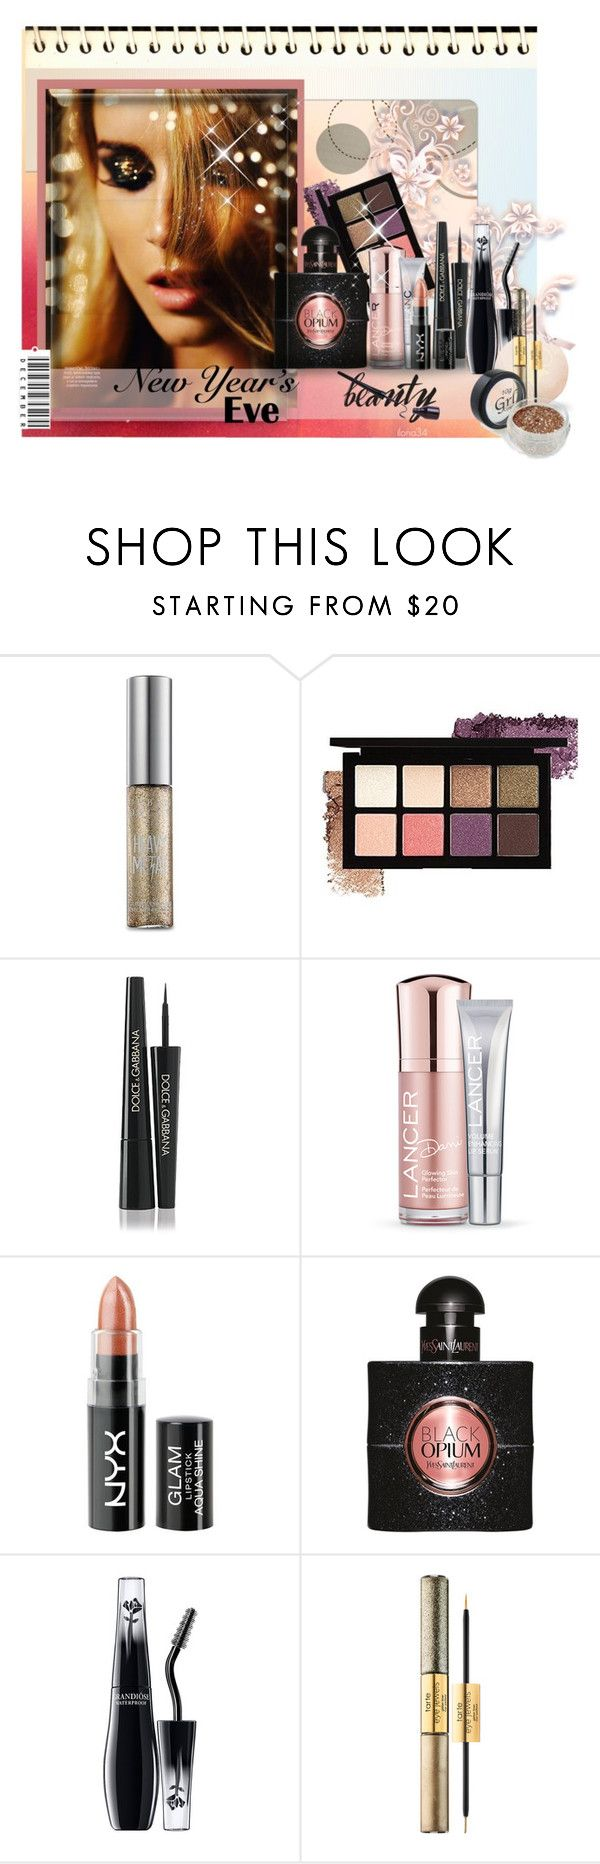 """""""Sparkly New Years"""" by ilona2010 ❤ liked on Polyvore featuring beauty, Urban Decay, Dolce&Gabbana, Lancer Dermatology, Yves Saint Laurent, Lancôme and tarte"""